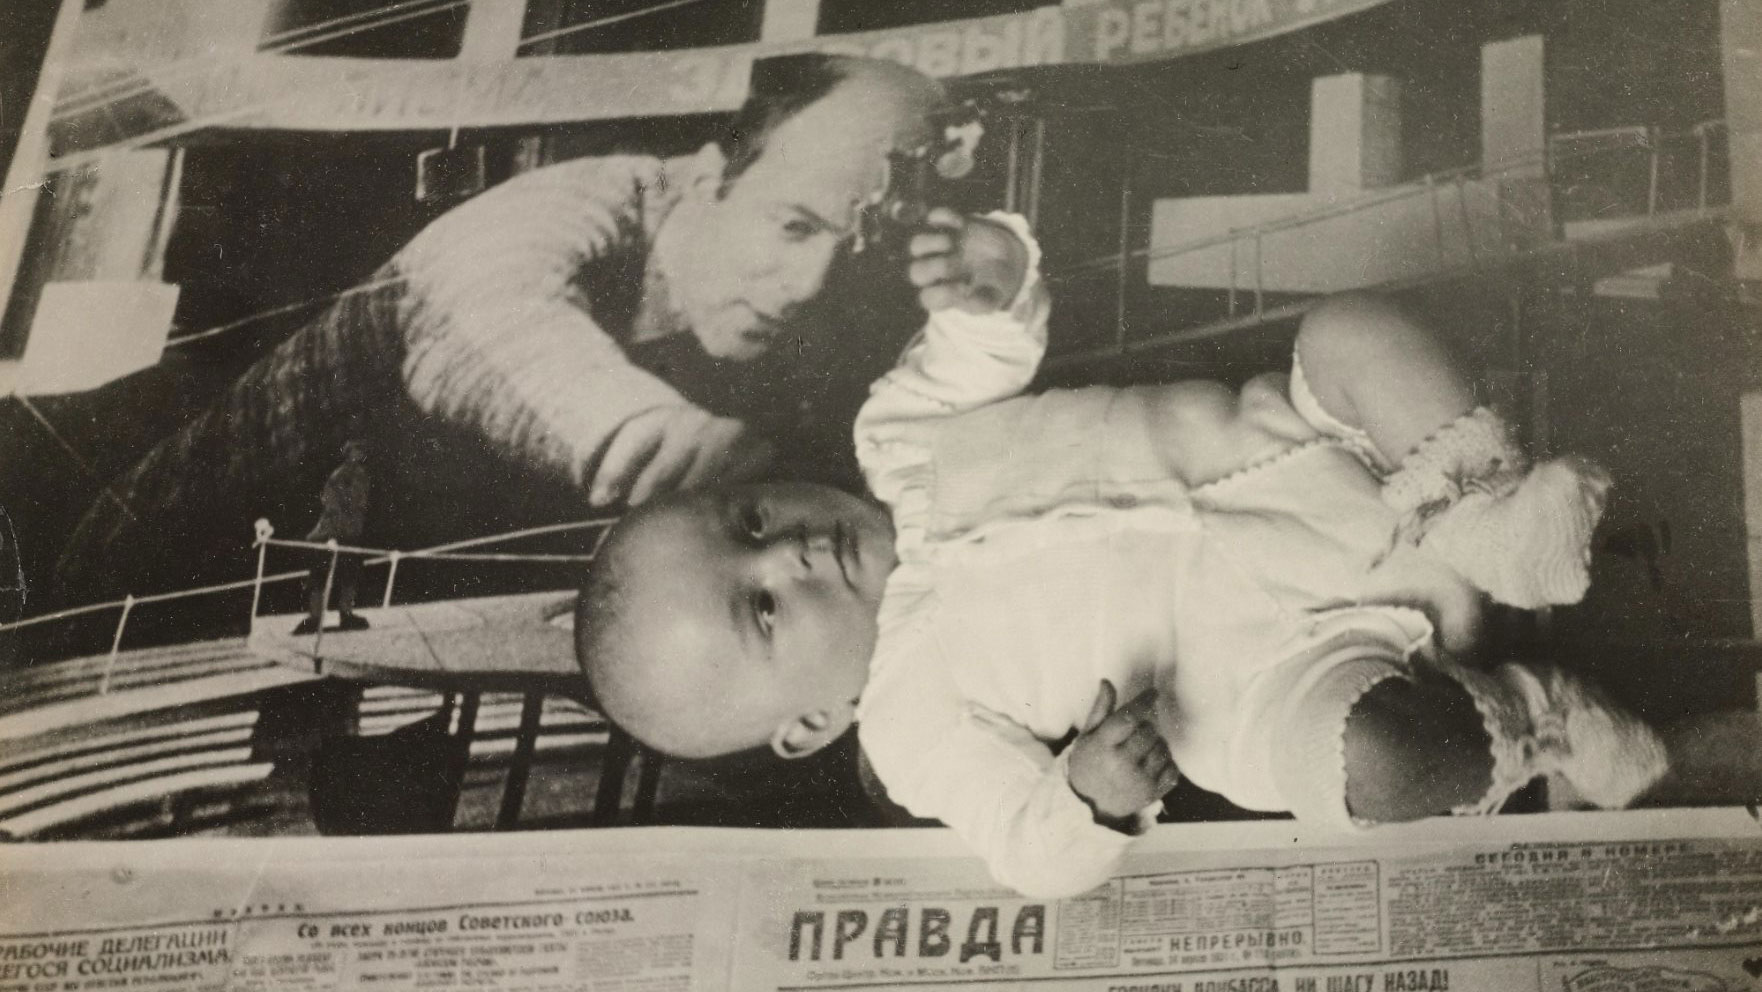 El Lissitzky, I WANT A CHILD, Photo-Collage, 1930.